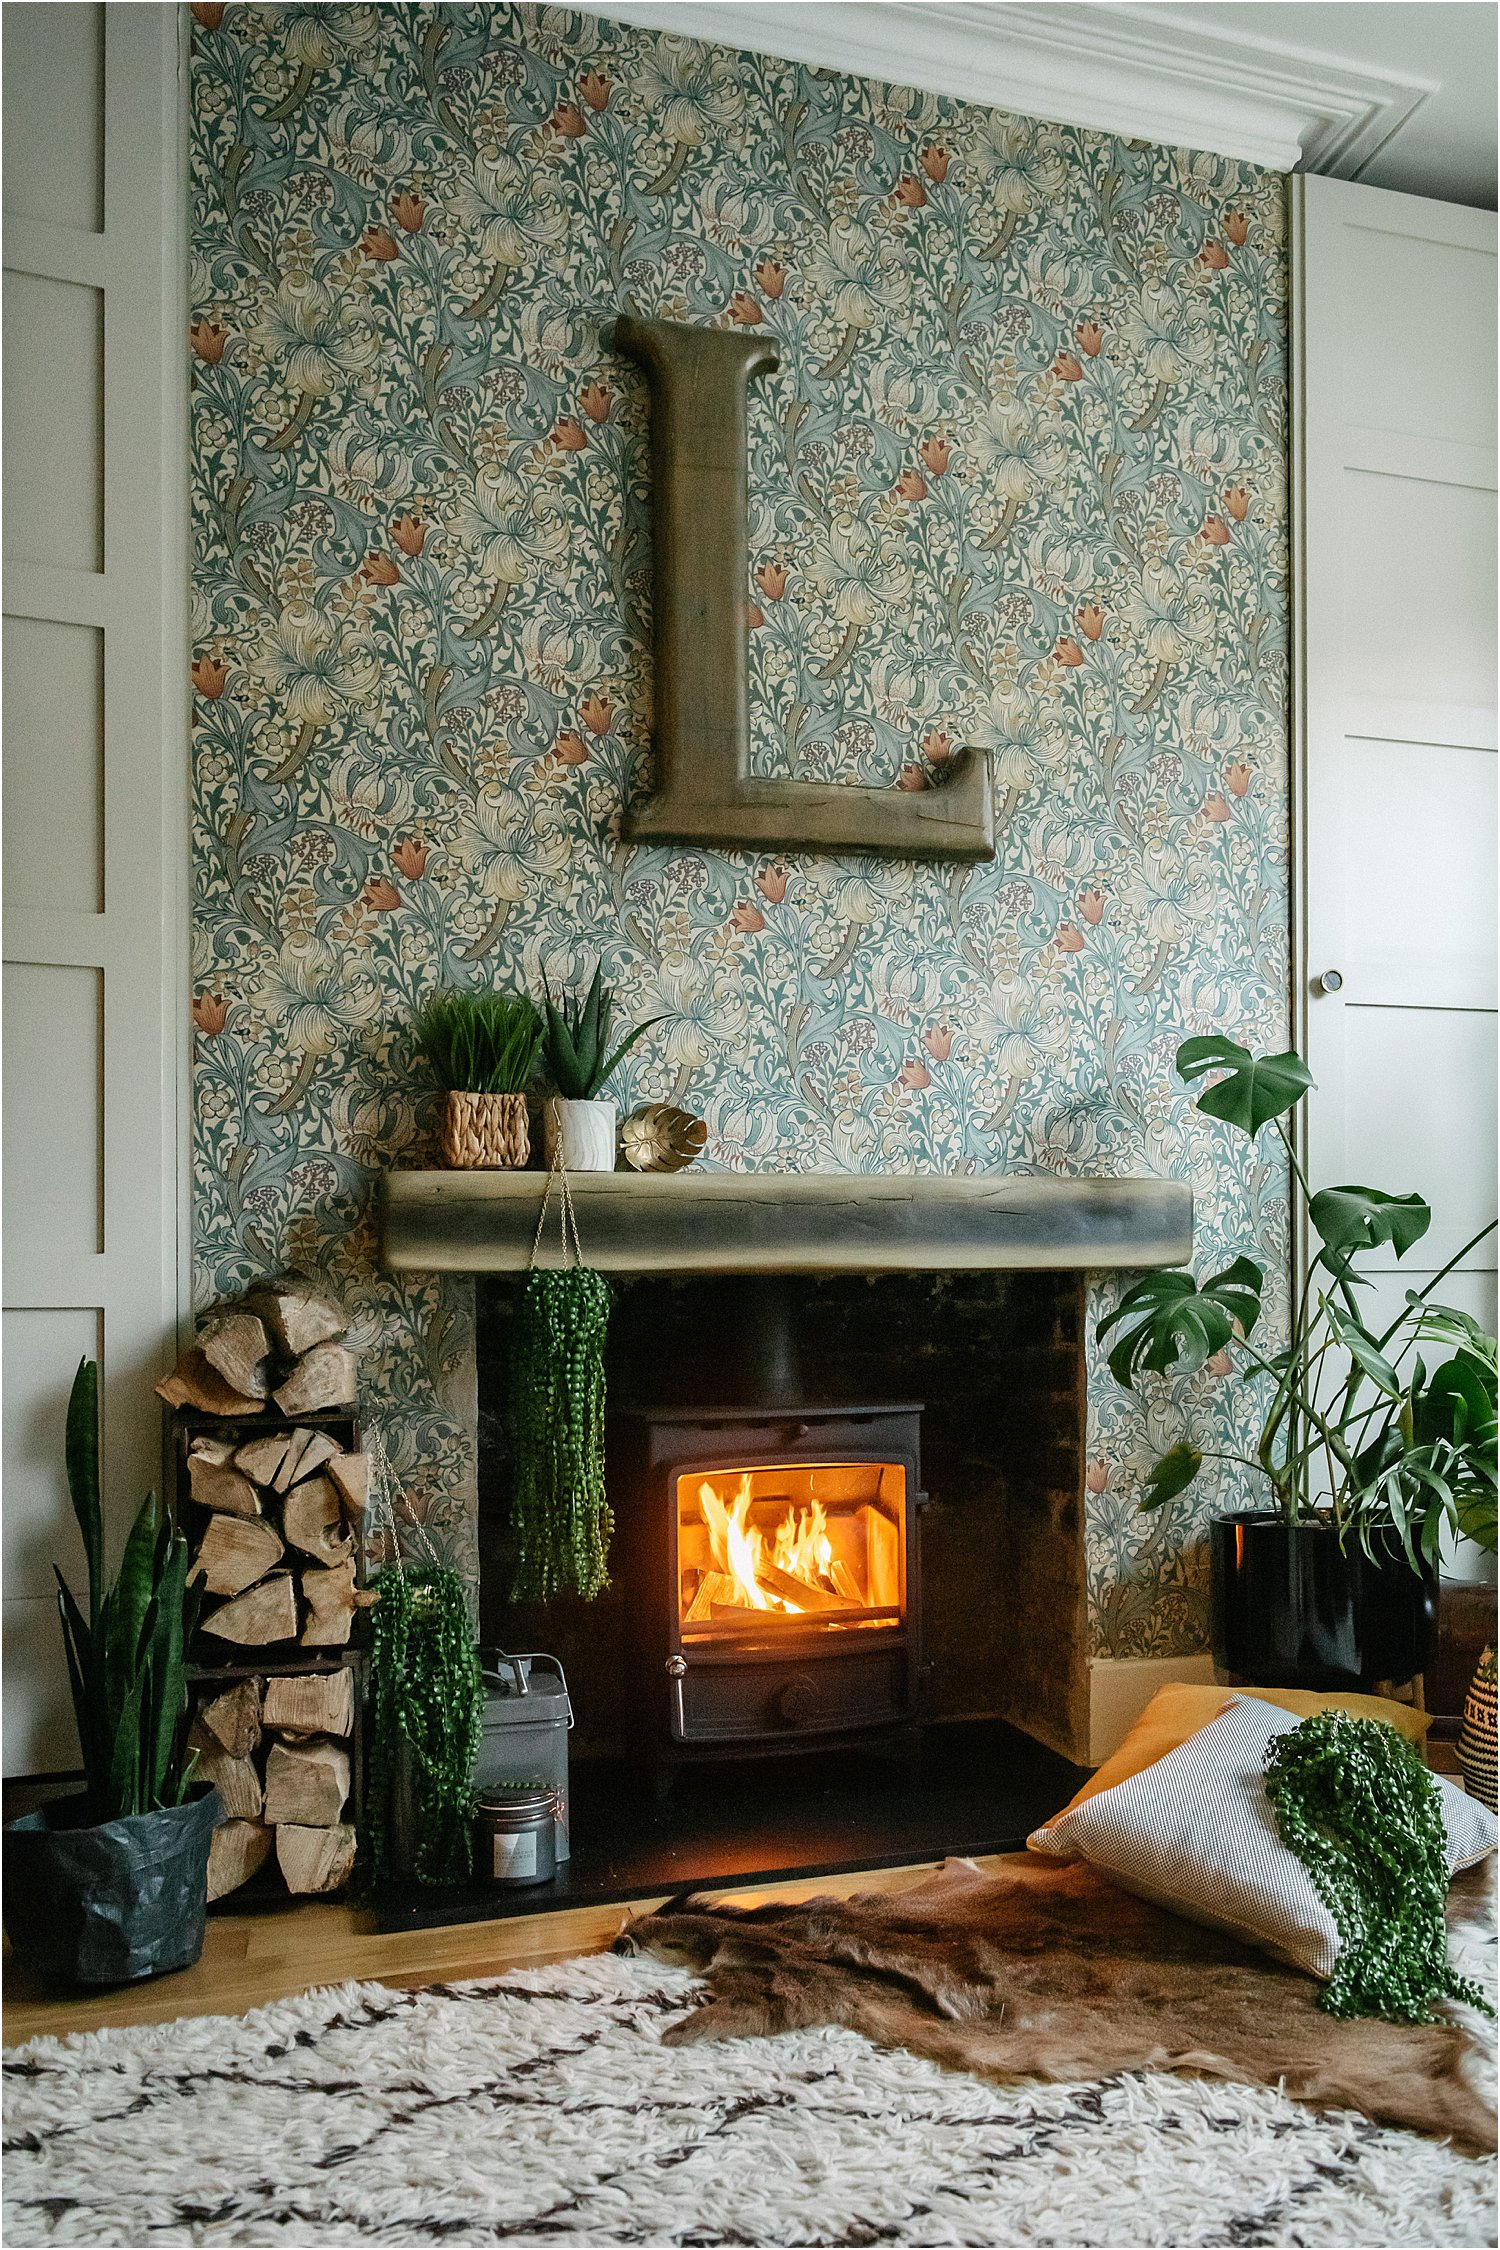 how-a-wood-burner-stove-changed-lifestyle-cosy-maximalist-eclectic-interiors-lily-sawyer-photo